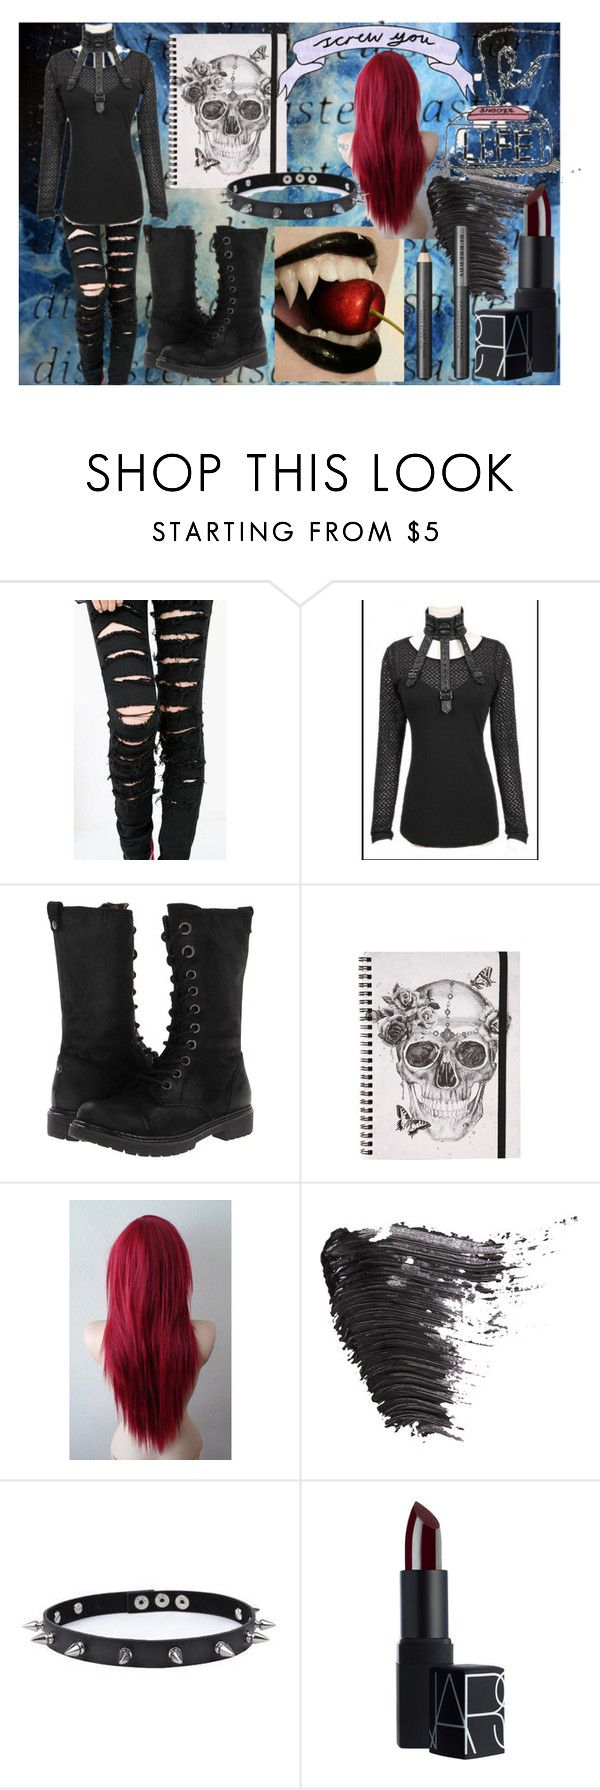 """""""Untitled #572"""" by creepypasta-music-anime-love ❤ liked on Polyvore featuring BC Footwear, Topshop, Trend Cool, NARS Cosmetics and Burberry"""